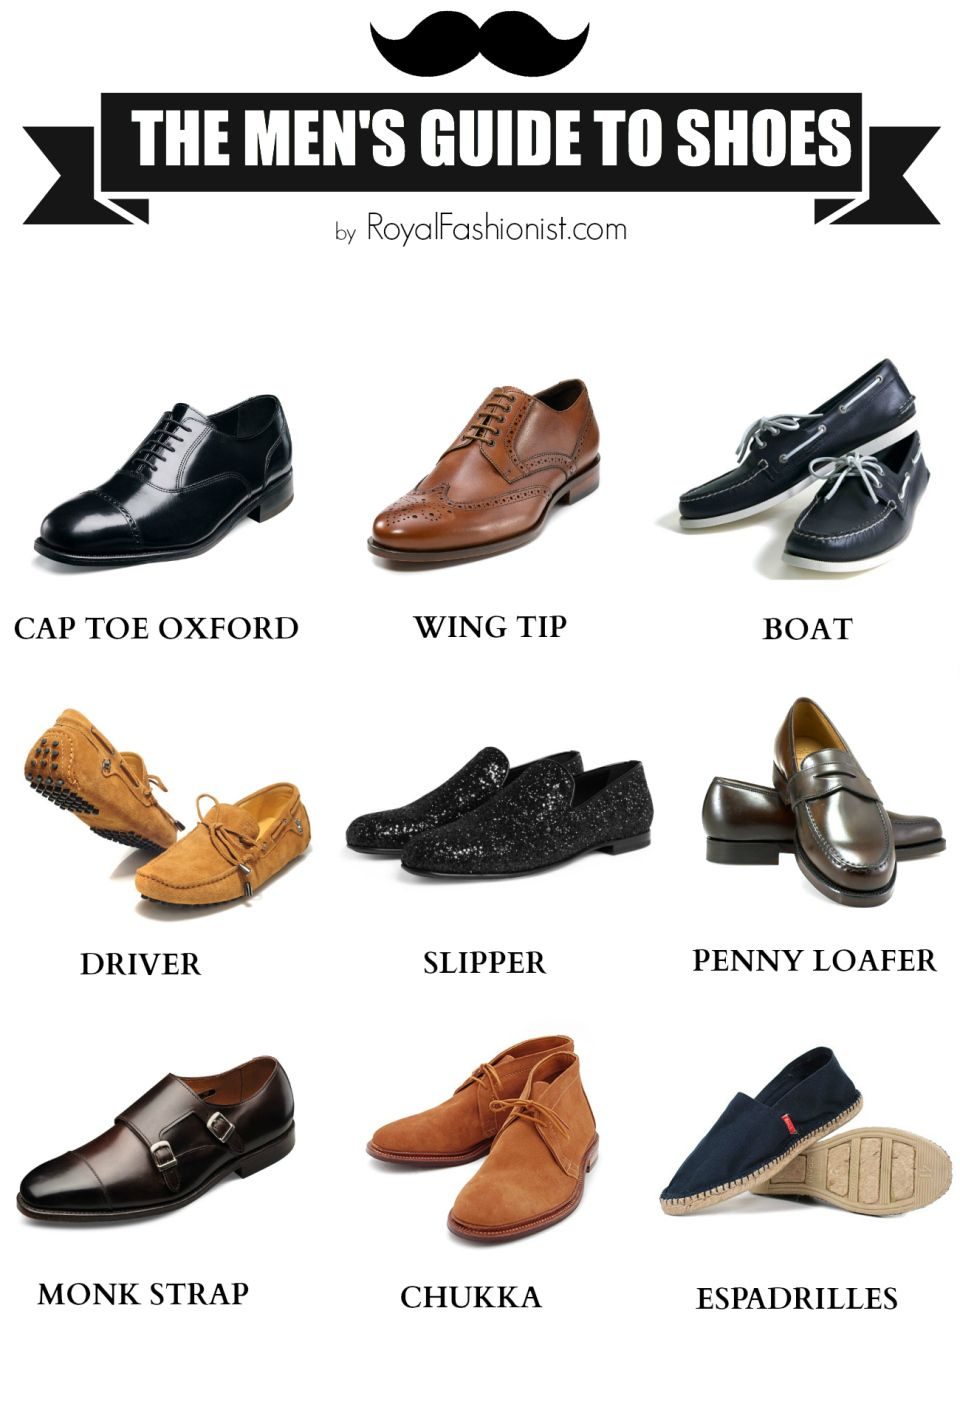 in this post i will show you the s guide to shoes